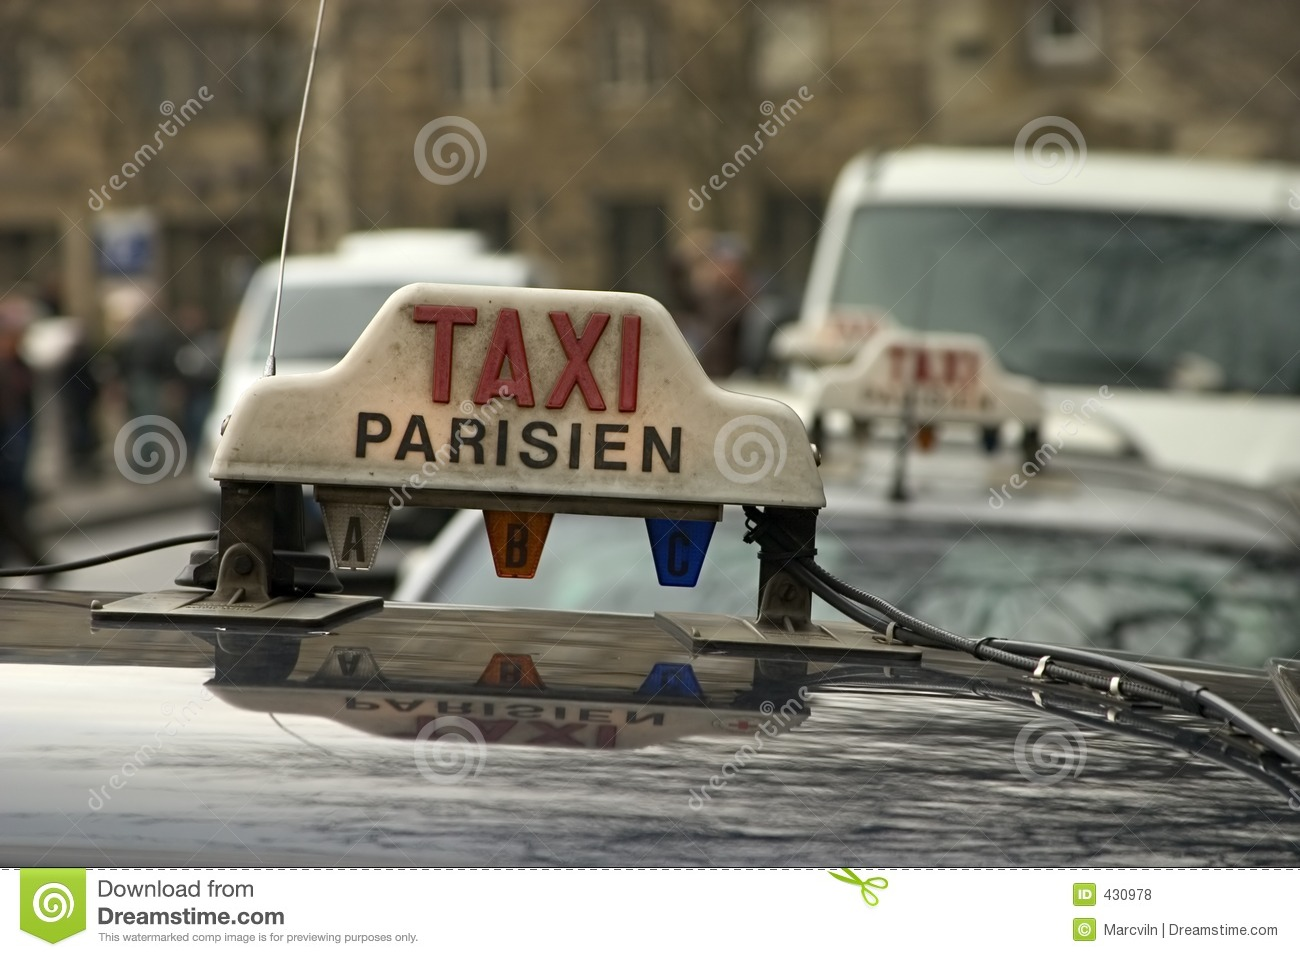 paris taxi stock photo image of vehicle driver holiday 430978. Black Bedroom Furniture Sets. Home Design Ideas